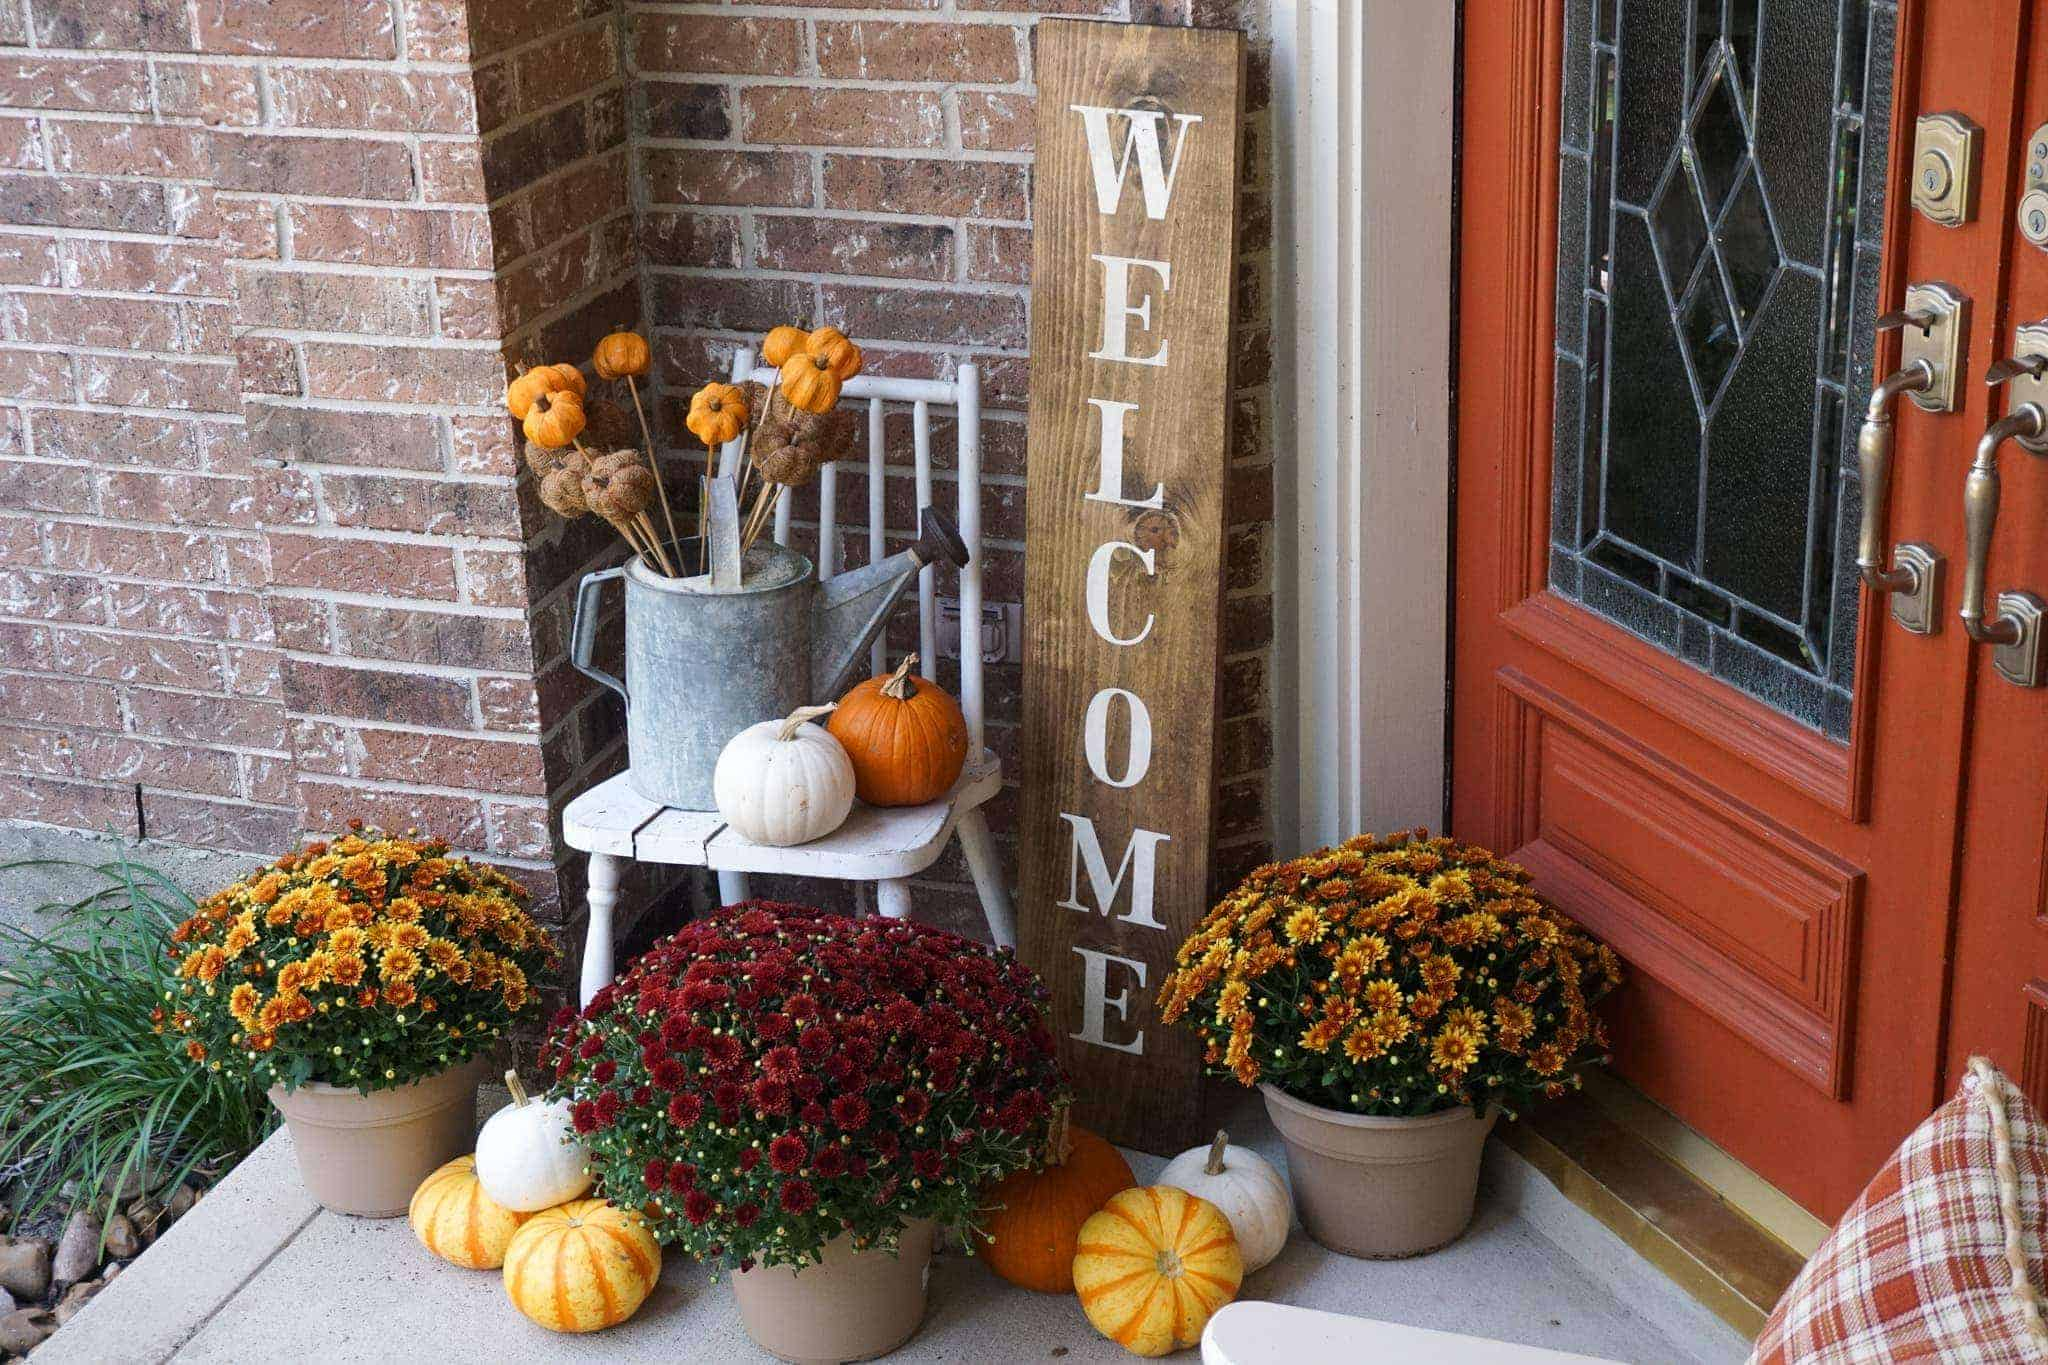 Decorating a front porch for fall.